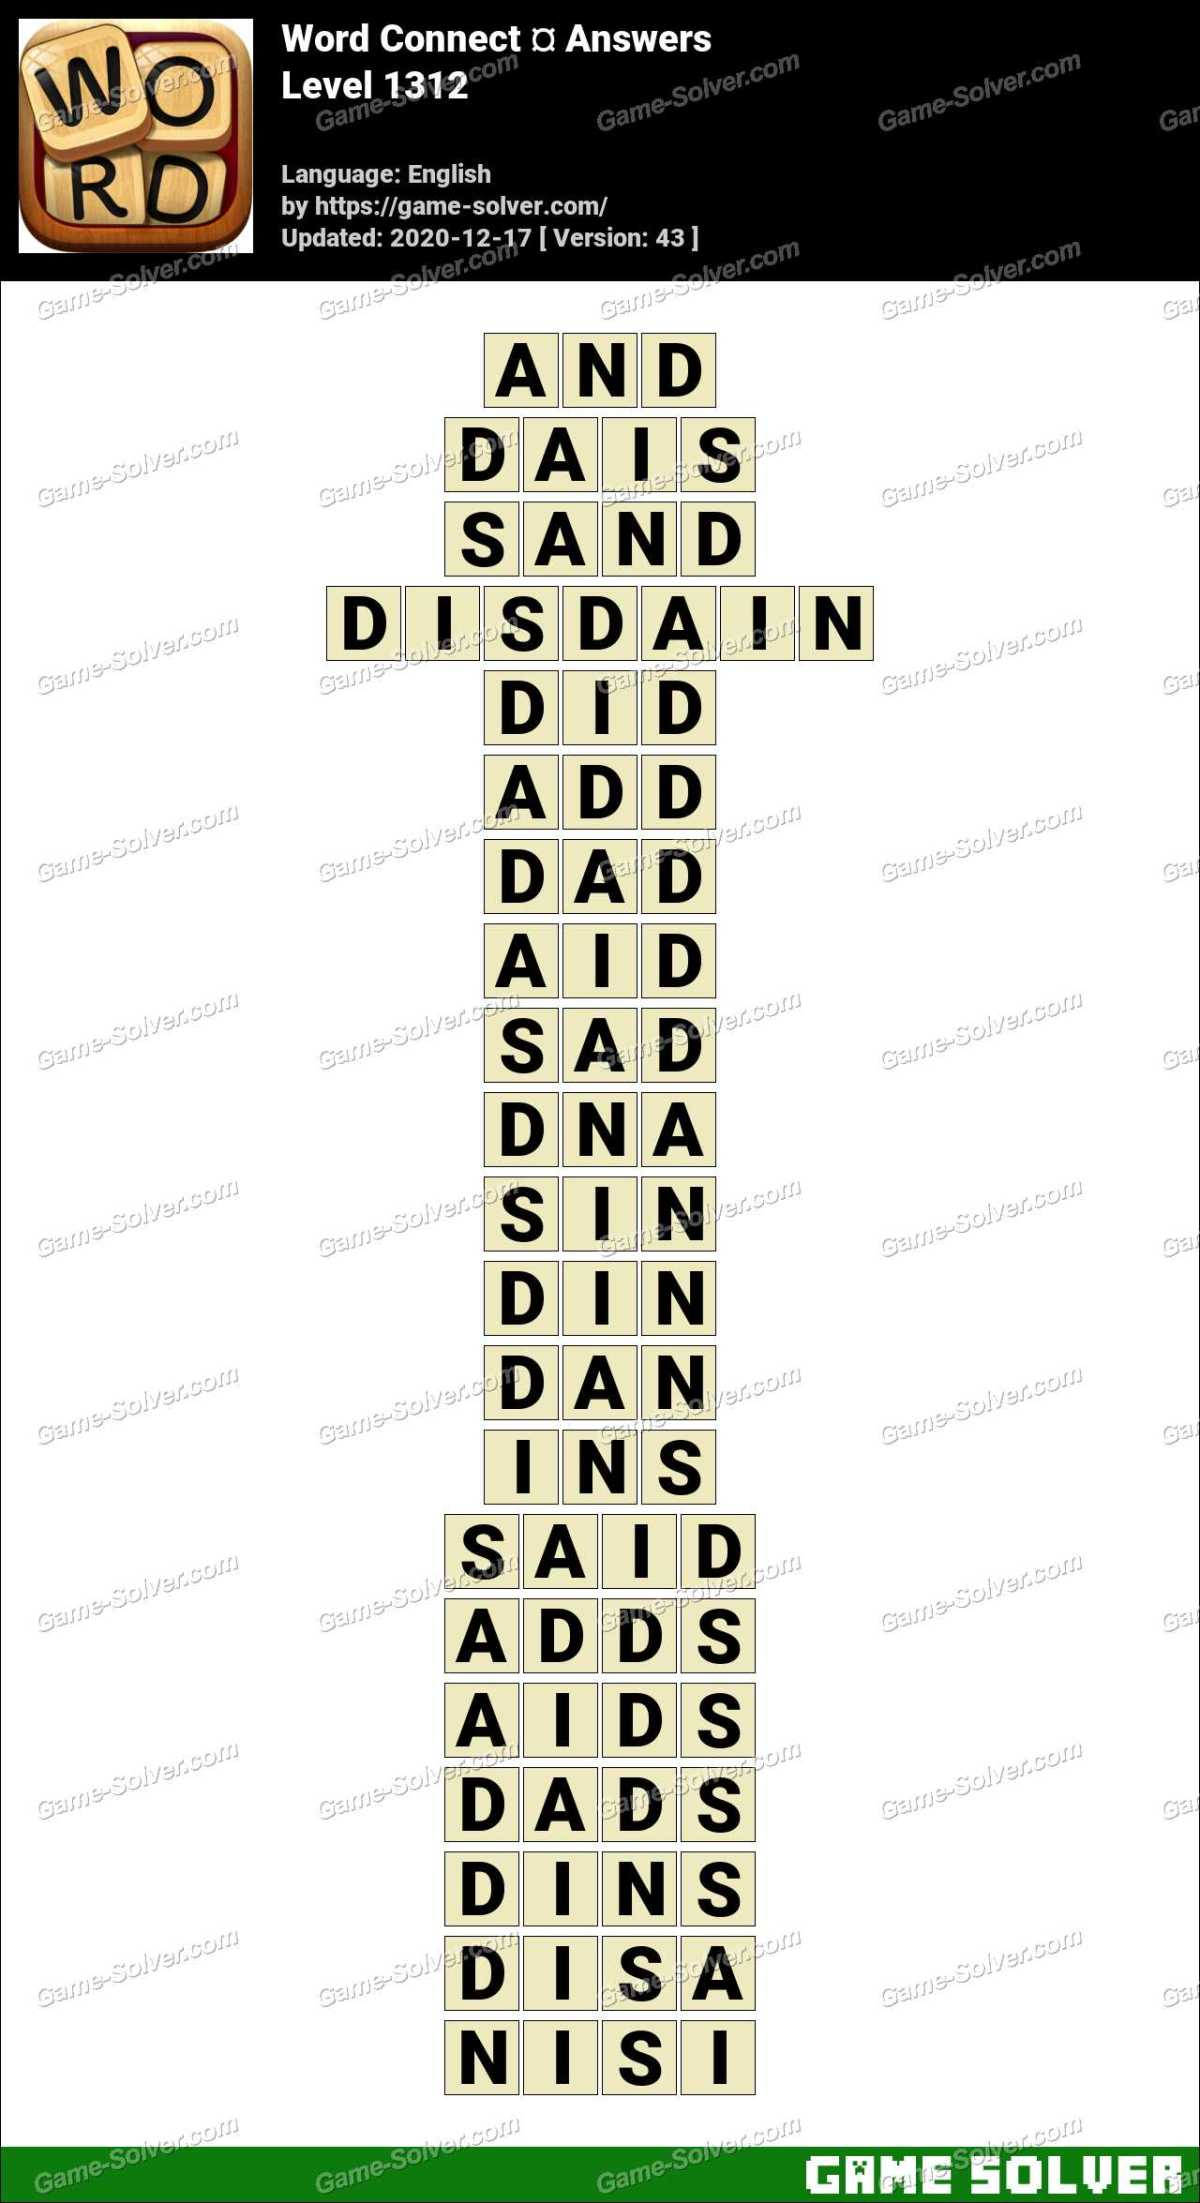 Word Connect Level 1312 Answers